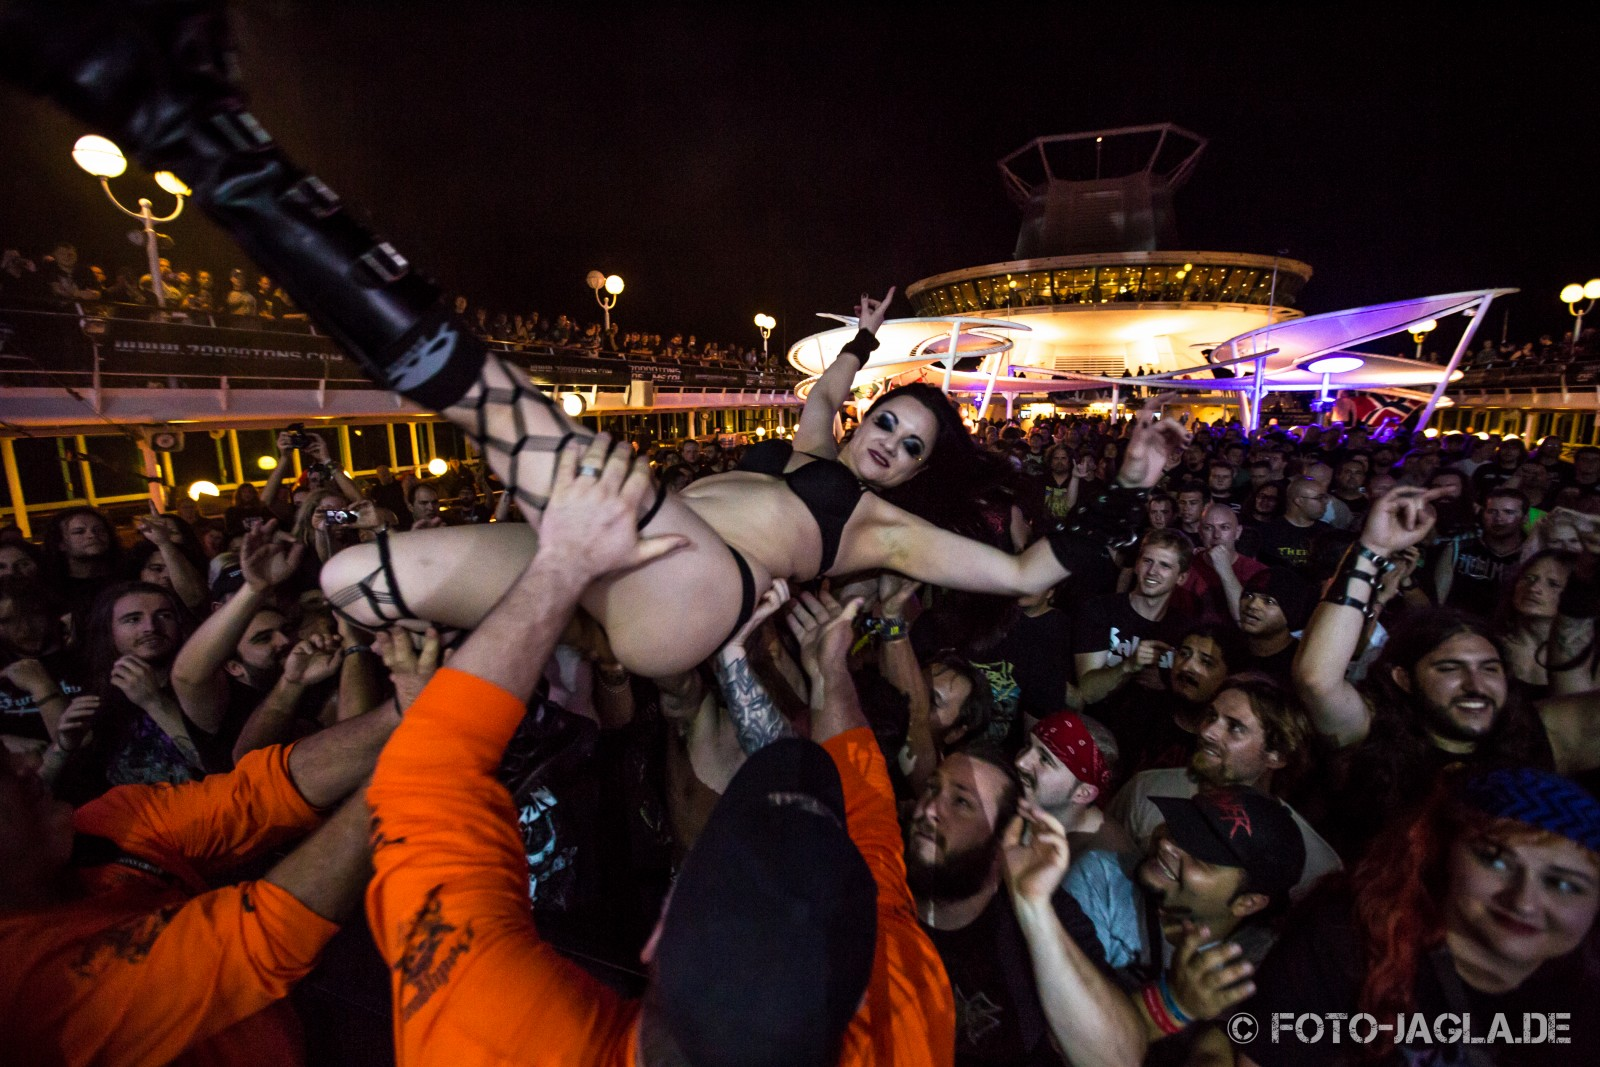 70000 Tons of Metal 2014 ::. Girls just wanna have fun - Crowd @ Carcass